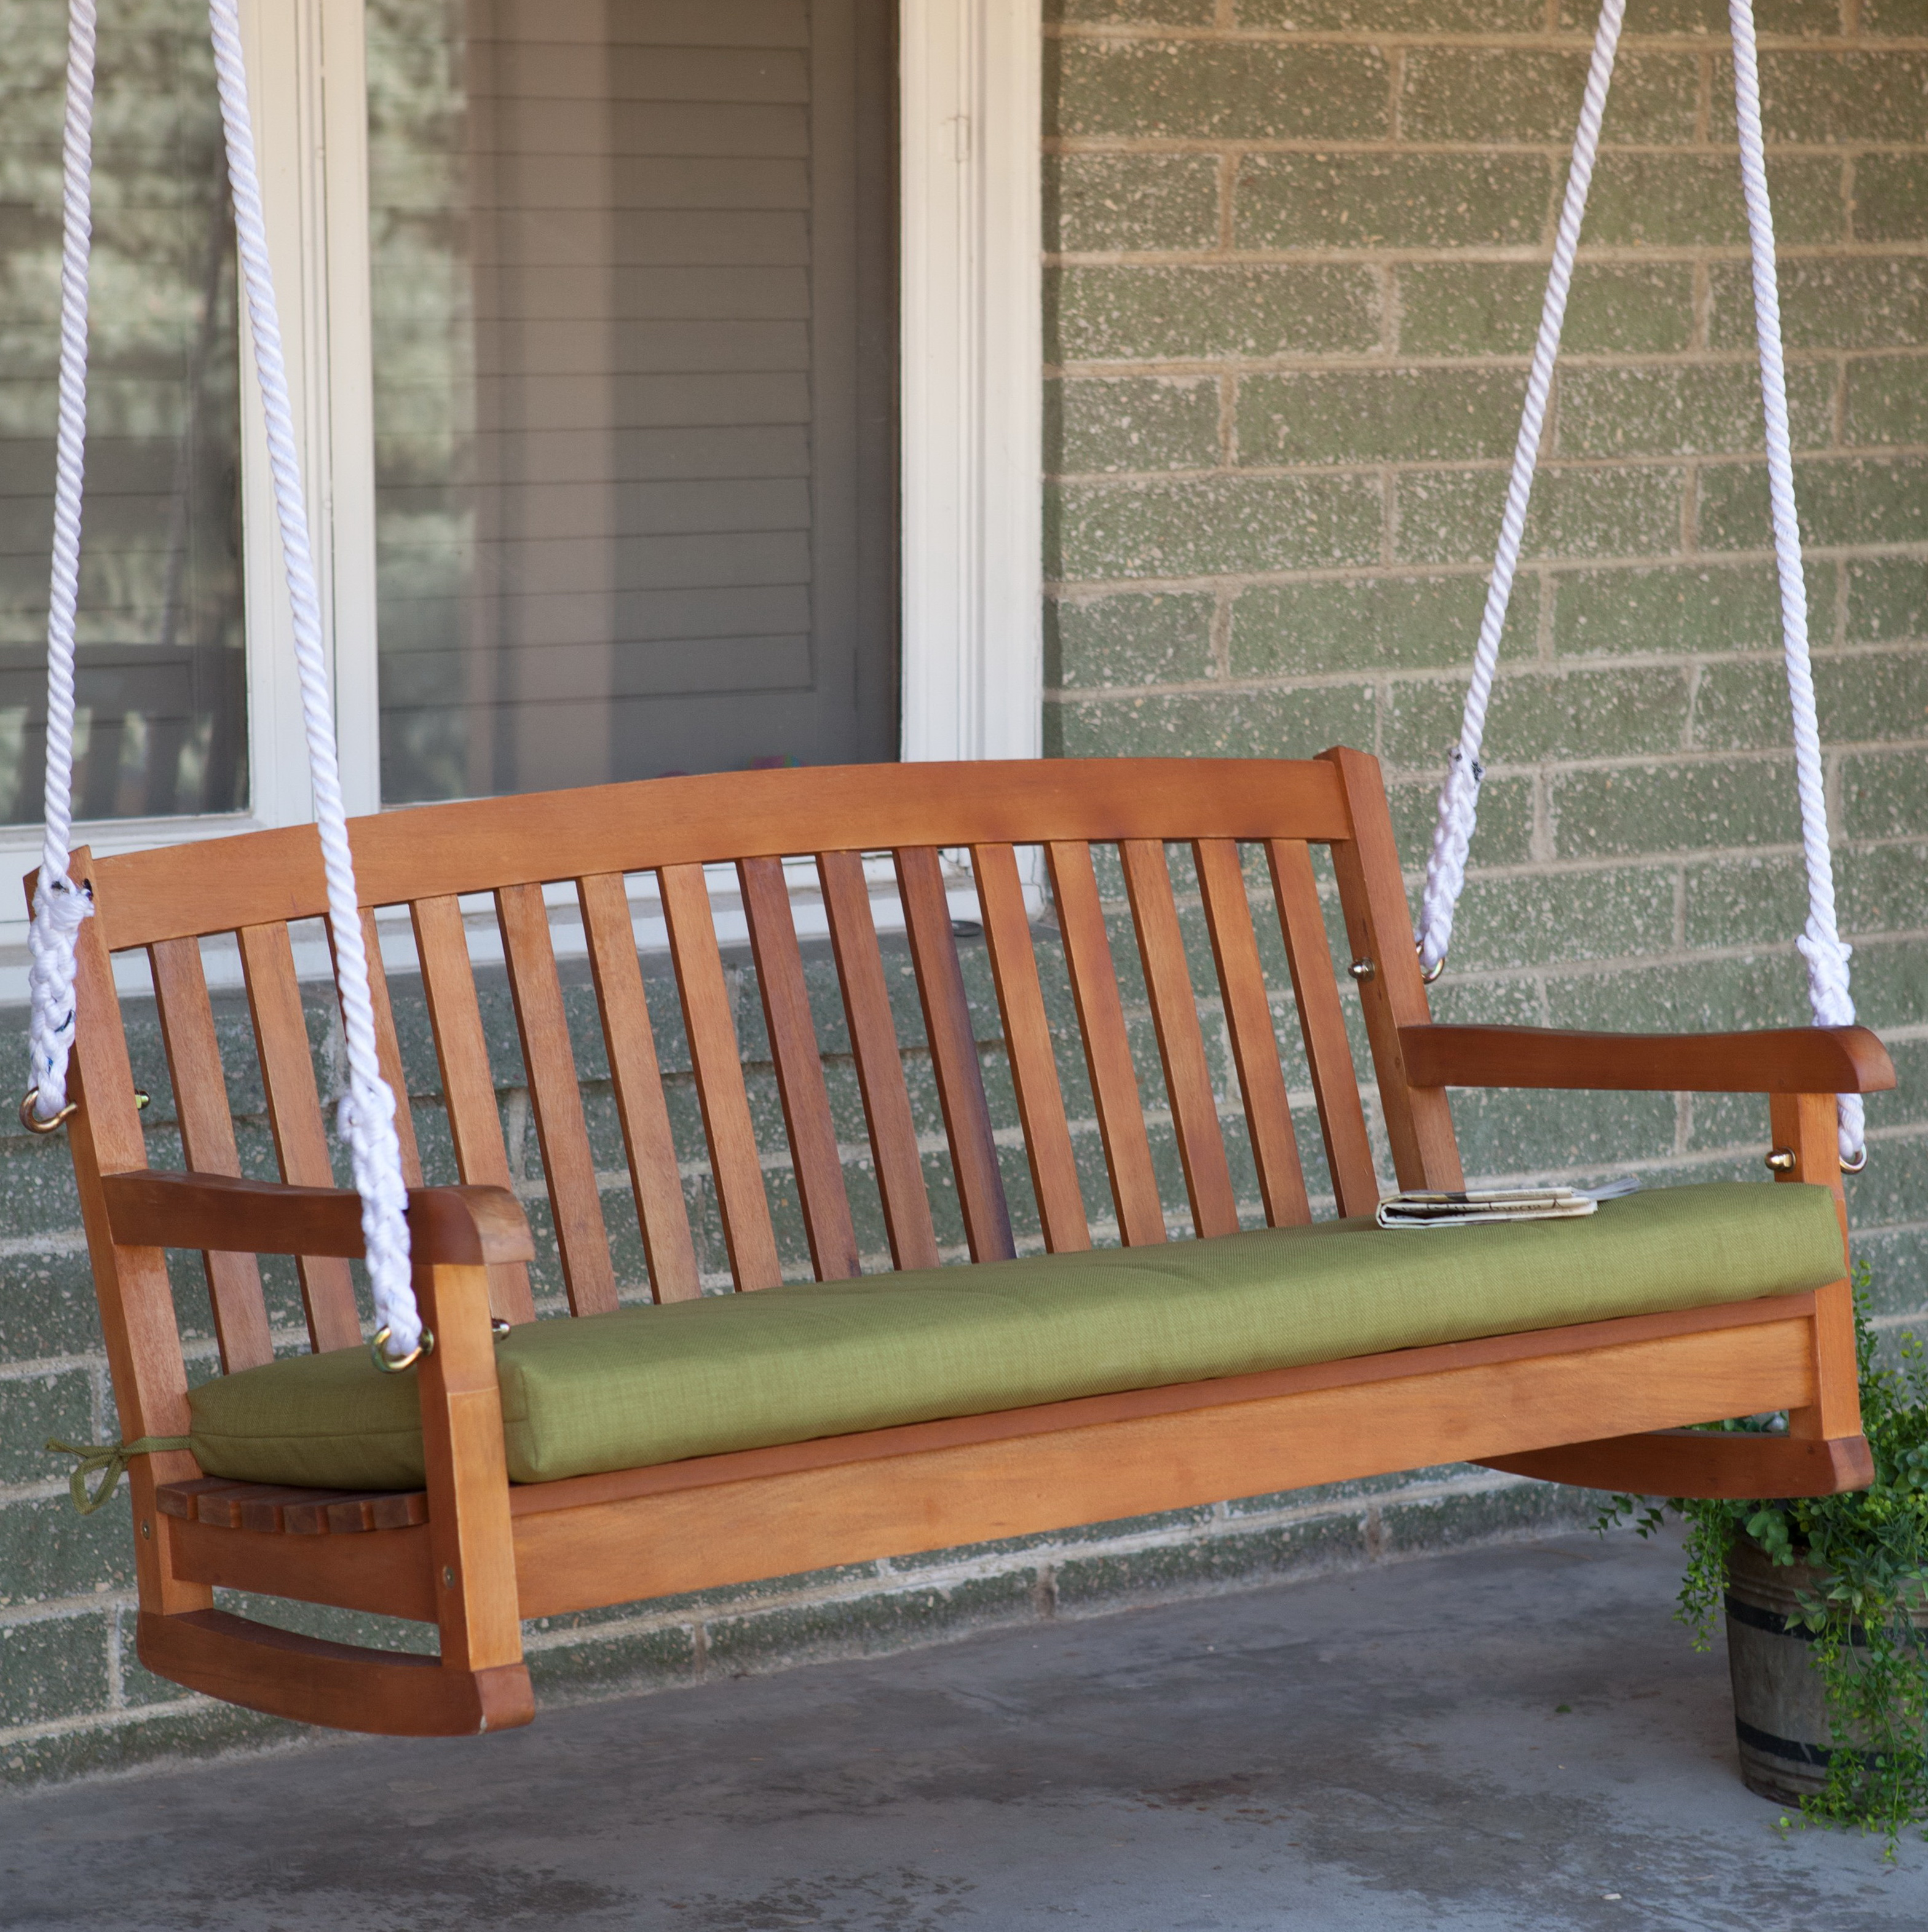 Diy Outdoor Bench Cushion 48 Inch Bench Cushion Outdoor Use The First Panel To Cut Out The